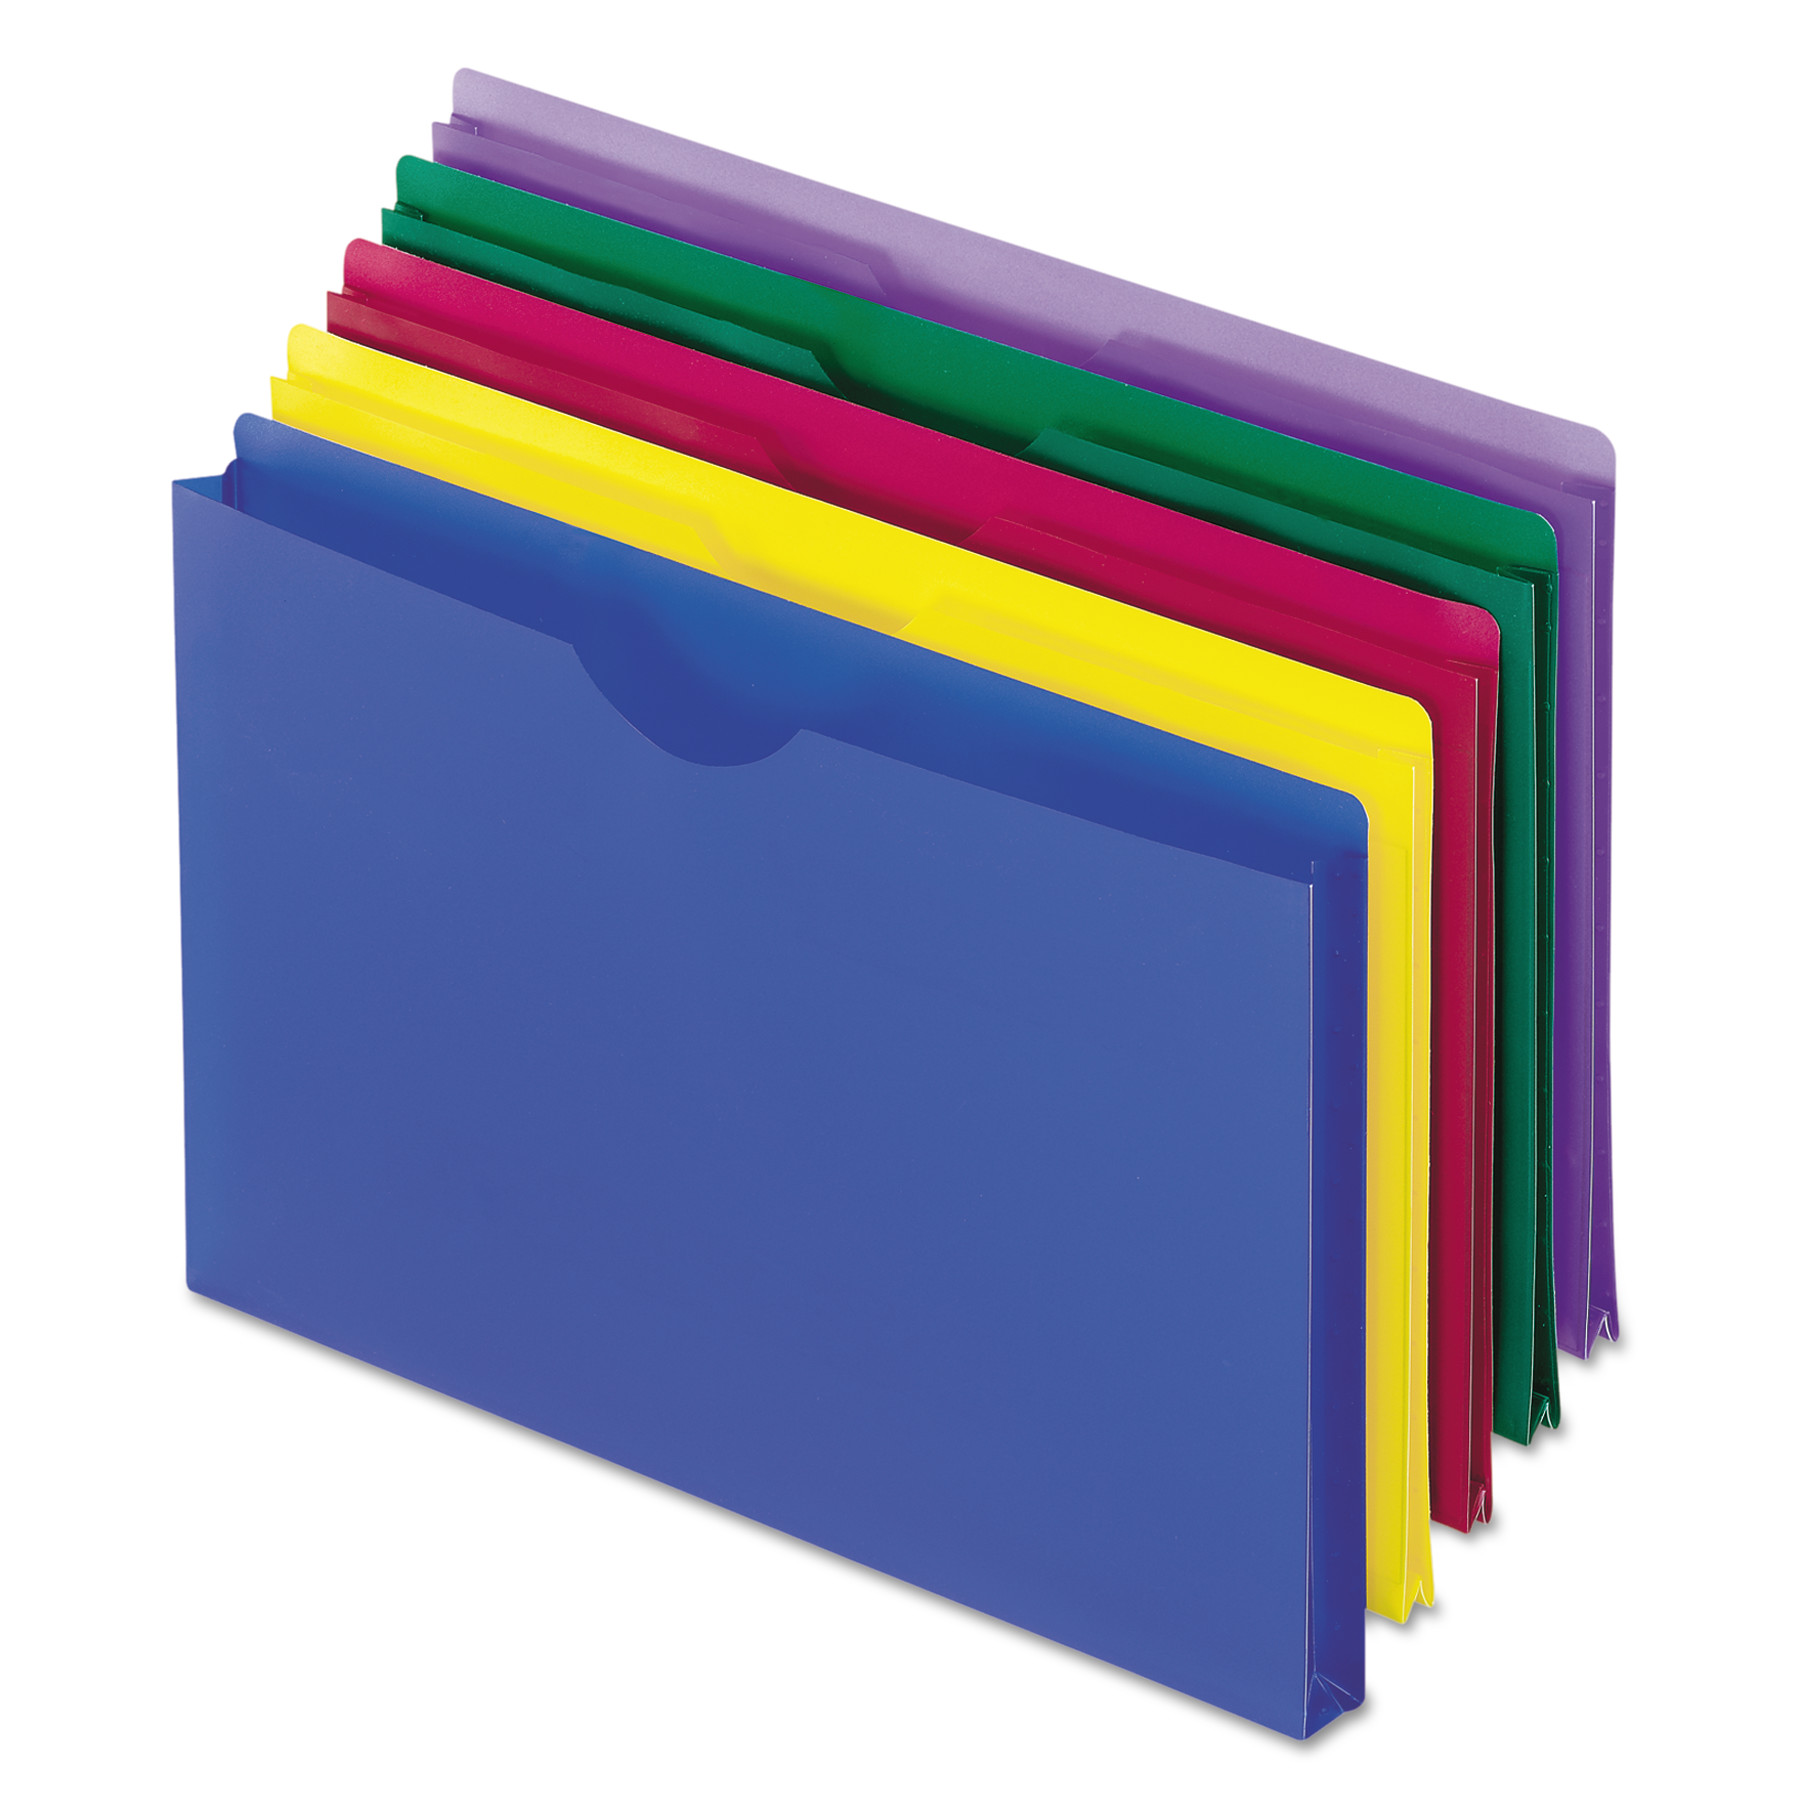 Pendaflex Expanding File Jackets, Legal, Poly, Blue/Green/Purple/Red/Yellow, 5/Pack